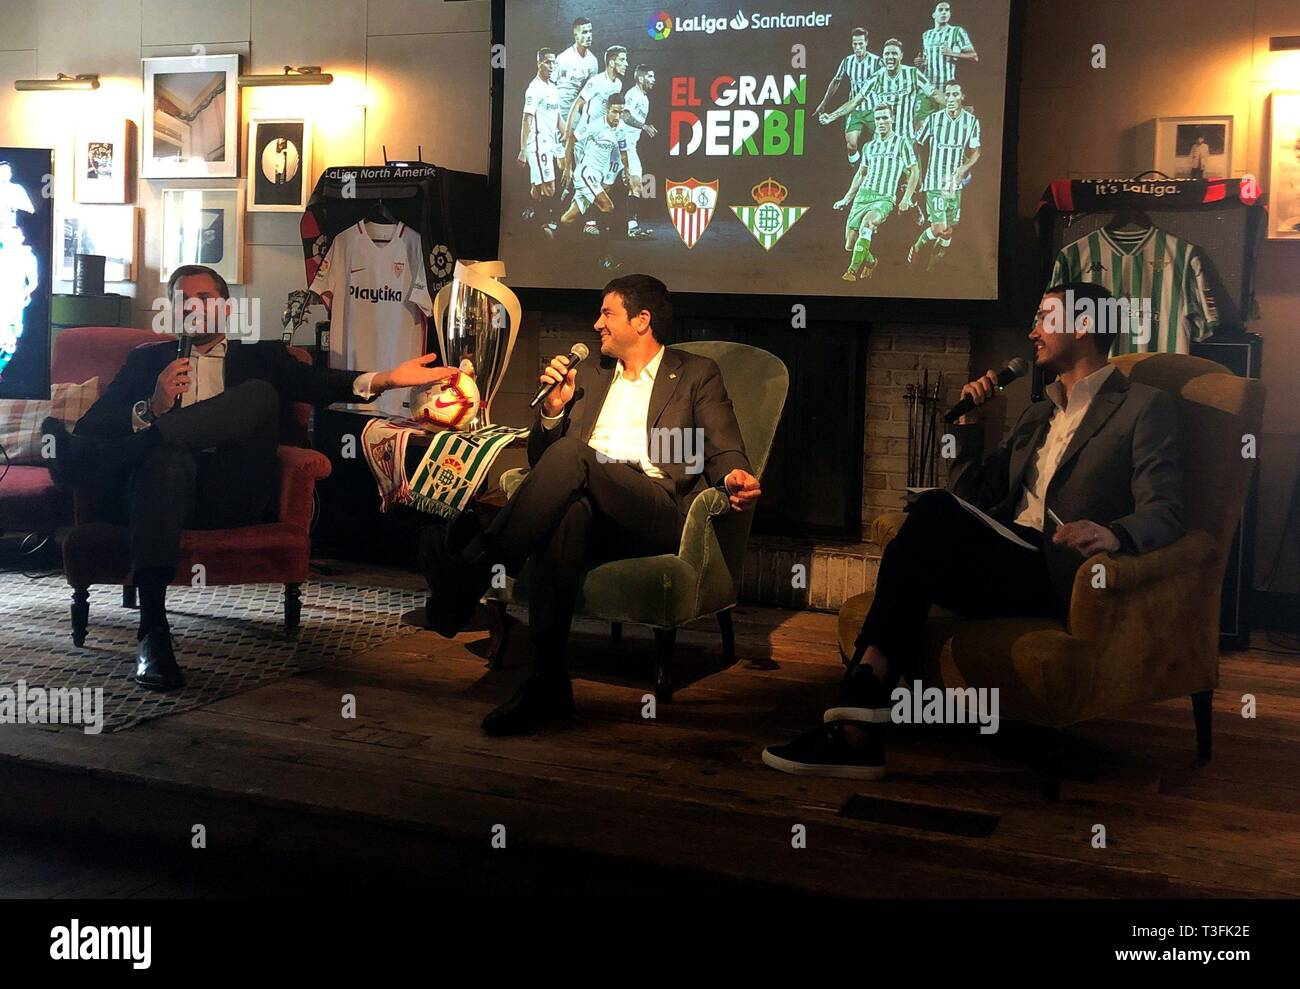 New York, USA. 09th Apr, 2019. LaLiga North America CEO Boris Gartner (L), Real Betis Business Chief Ramon Alarcon (C) and Sevilla's Marketing Director Ramon Loarte (R) speak during an event organized by LaLiga, in New York, United States, 09 April 2019. Credit: Helen Cook/EFE/Alamy Live News Stock Photo